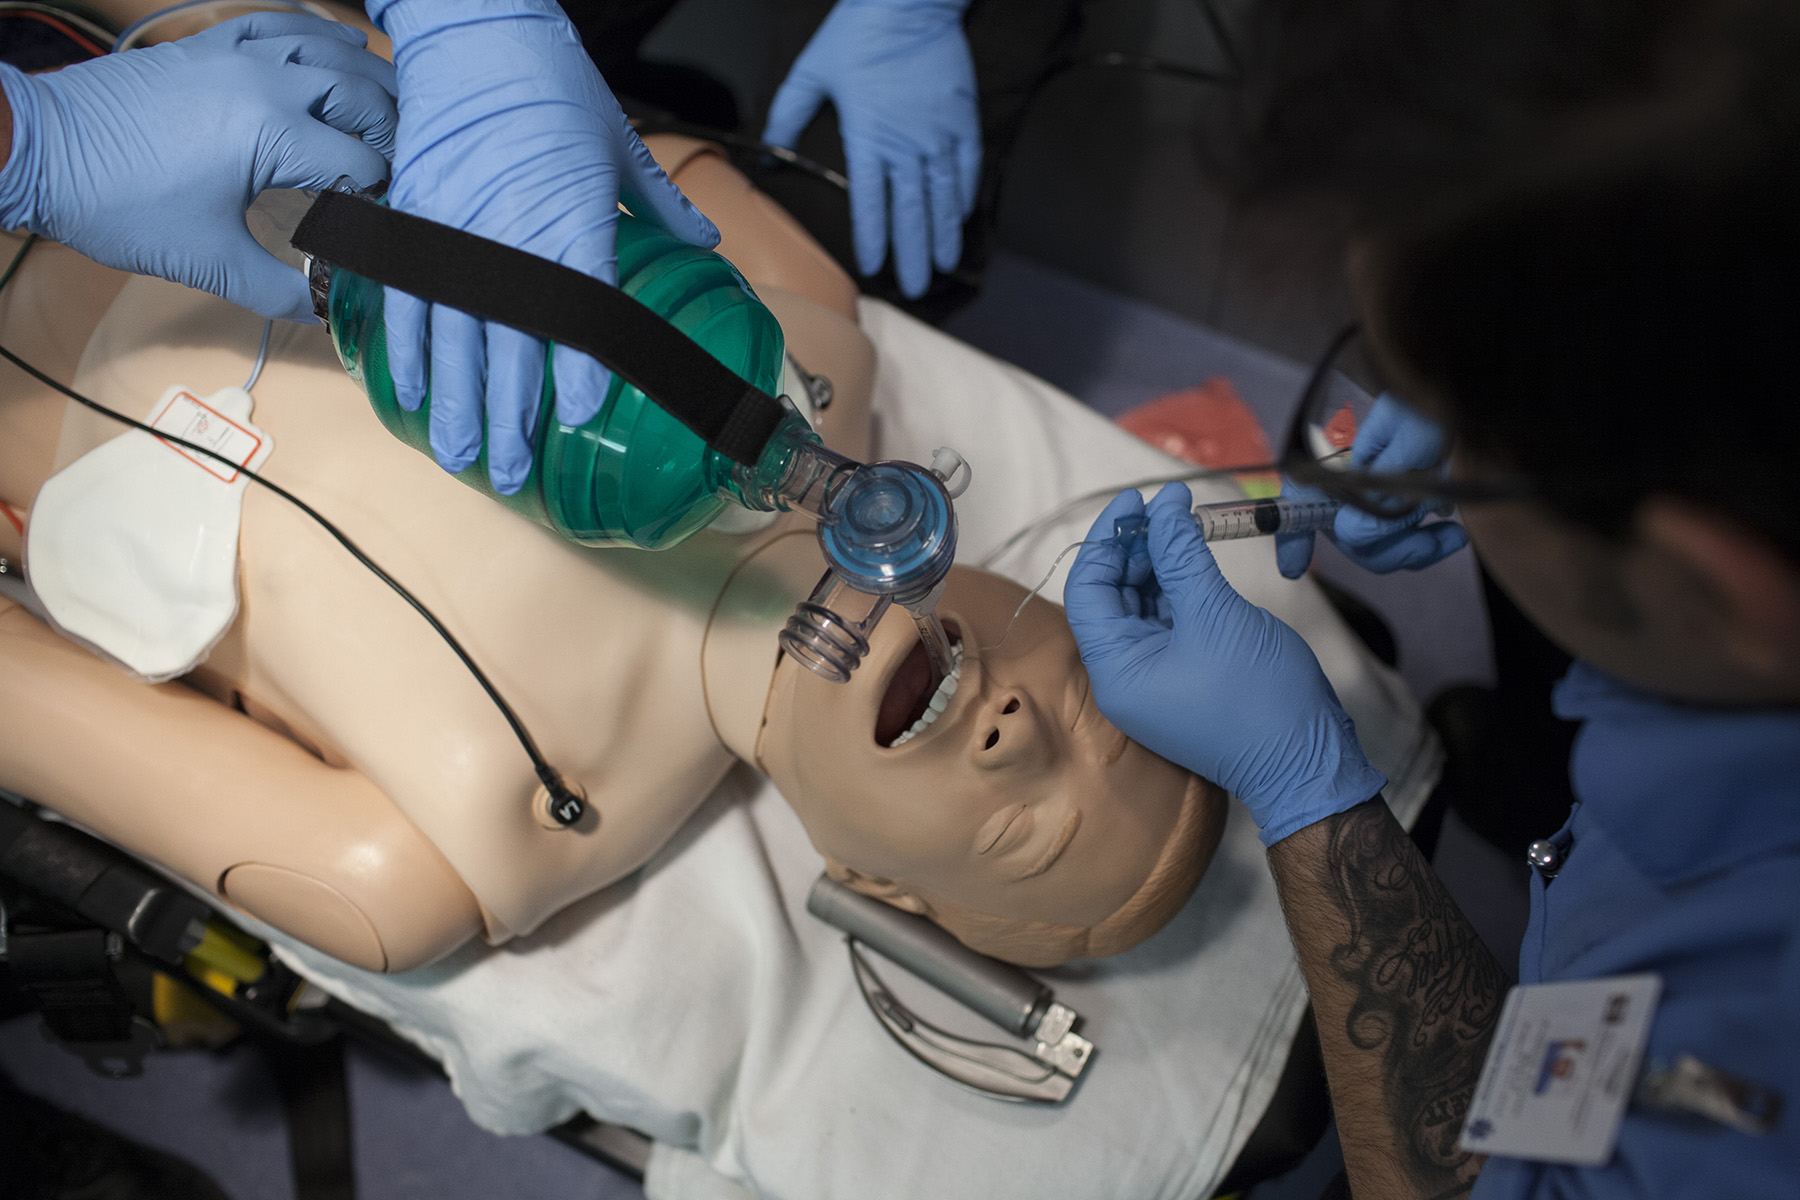 Wharton County Junior College Emergency Medical Services Program students practice lifesaving skills on a mannequin in the back of a mock ambulance. The program will begin offering classes in Bay City in January of 2018.